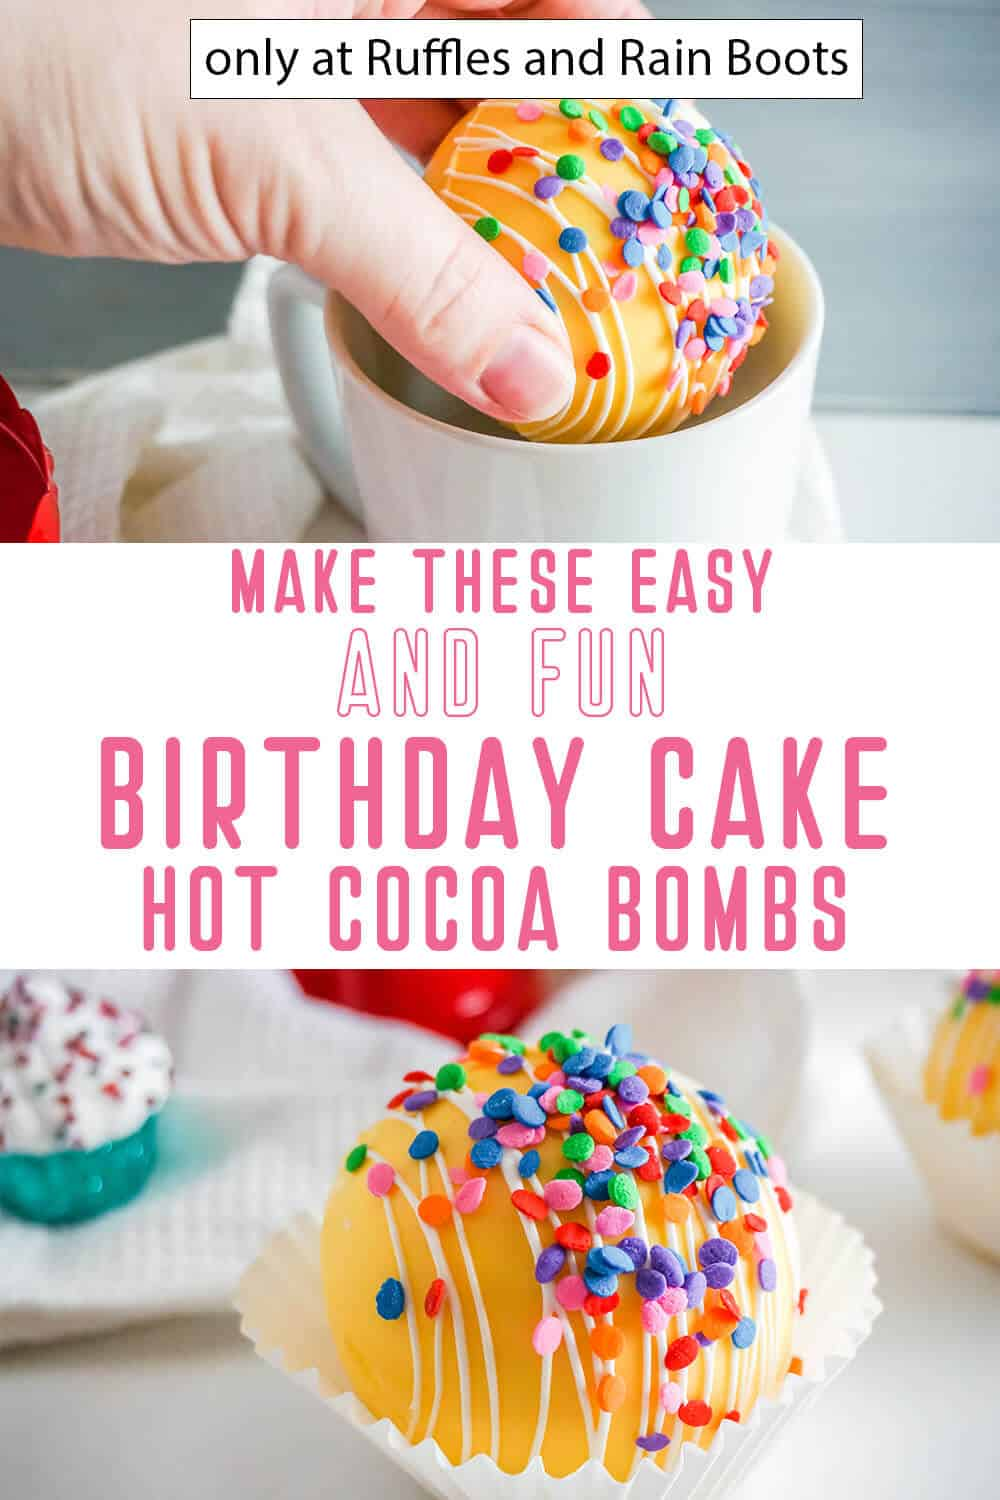 photo collage of birthday cake hot flavored cocoa bombs with text which reads make these easy and fun birthday cake hot cocoa bombs